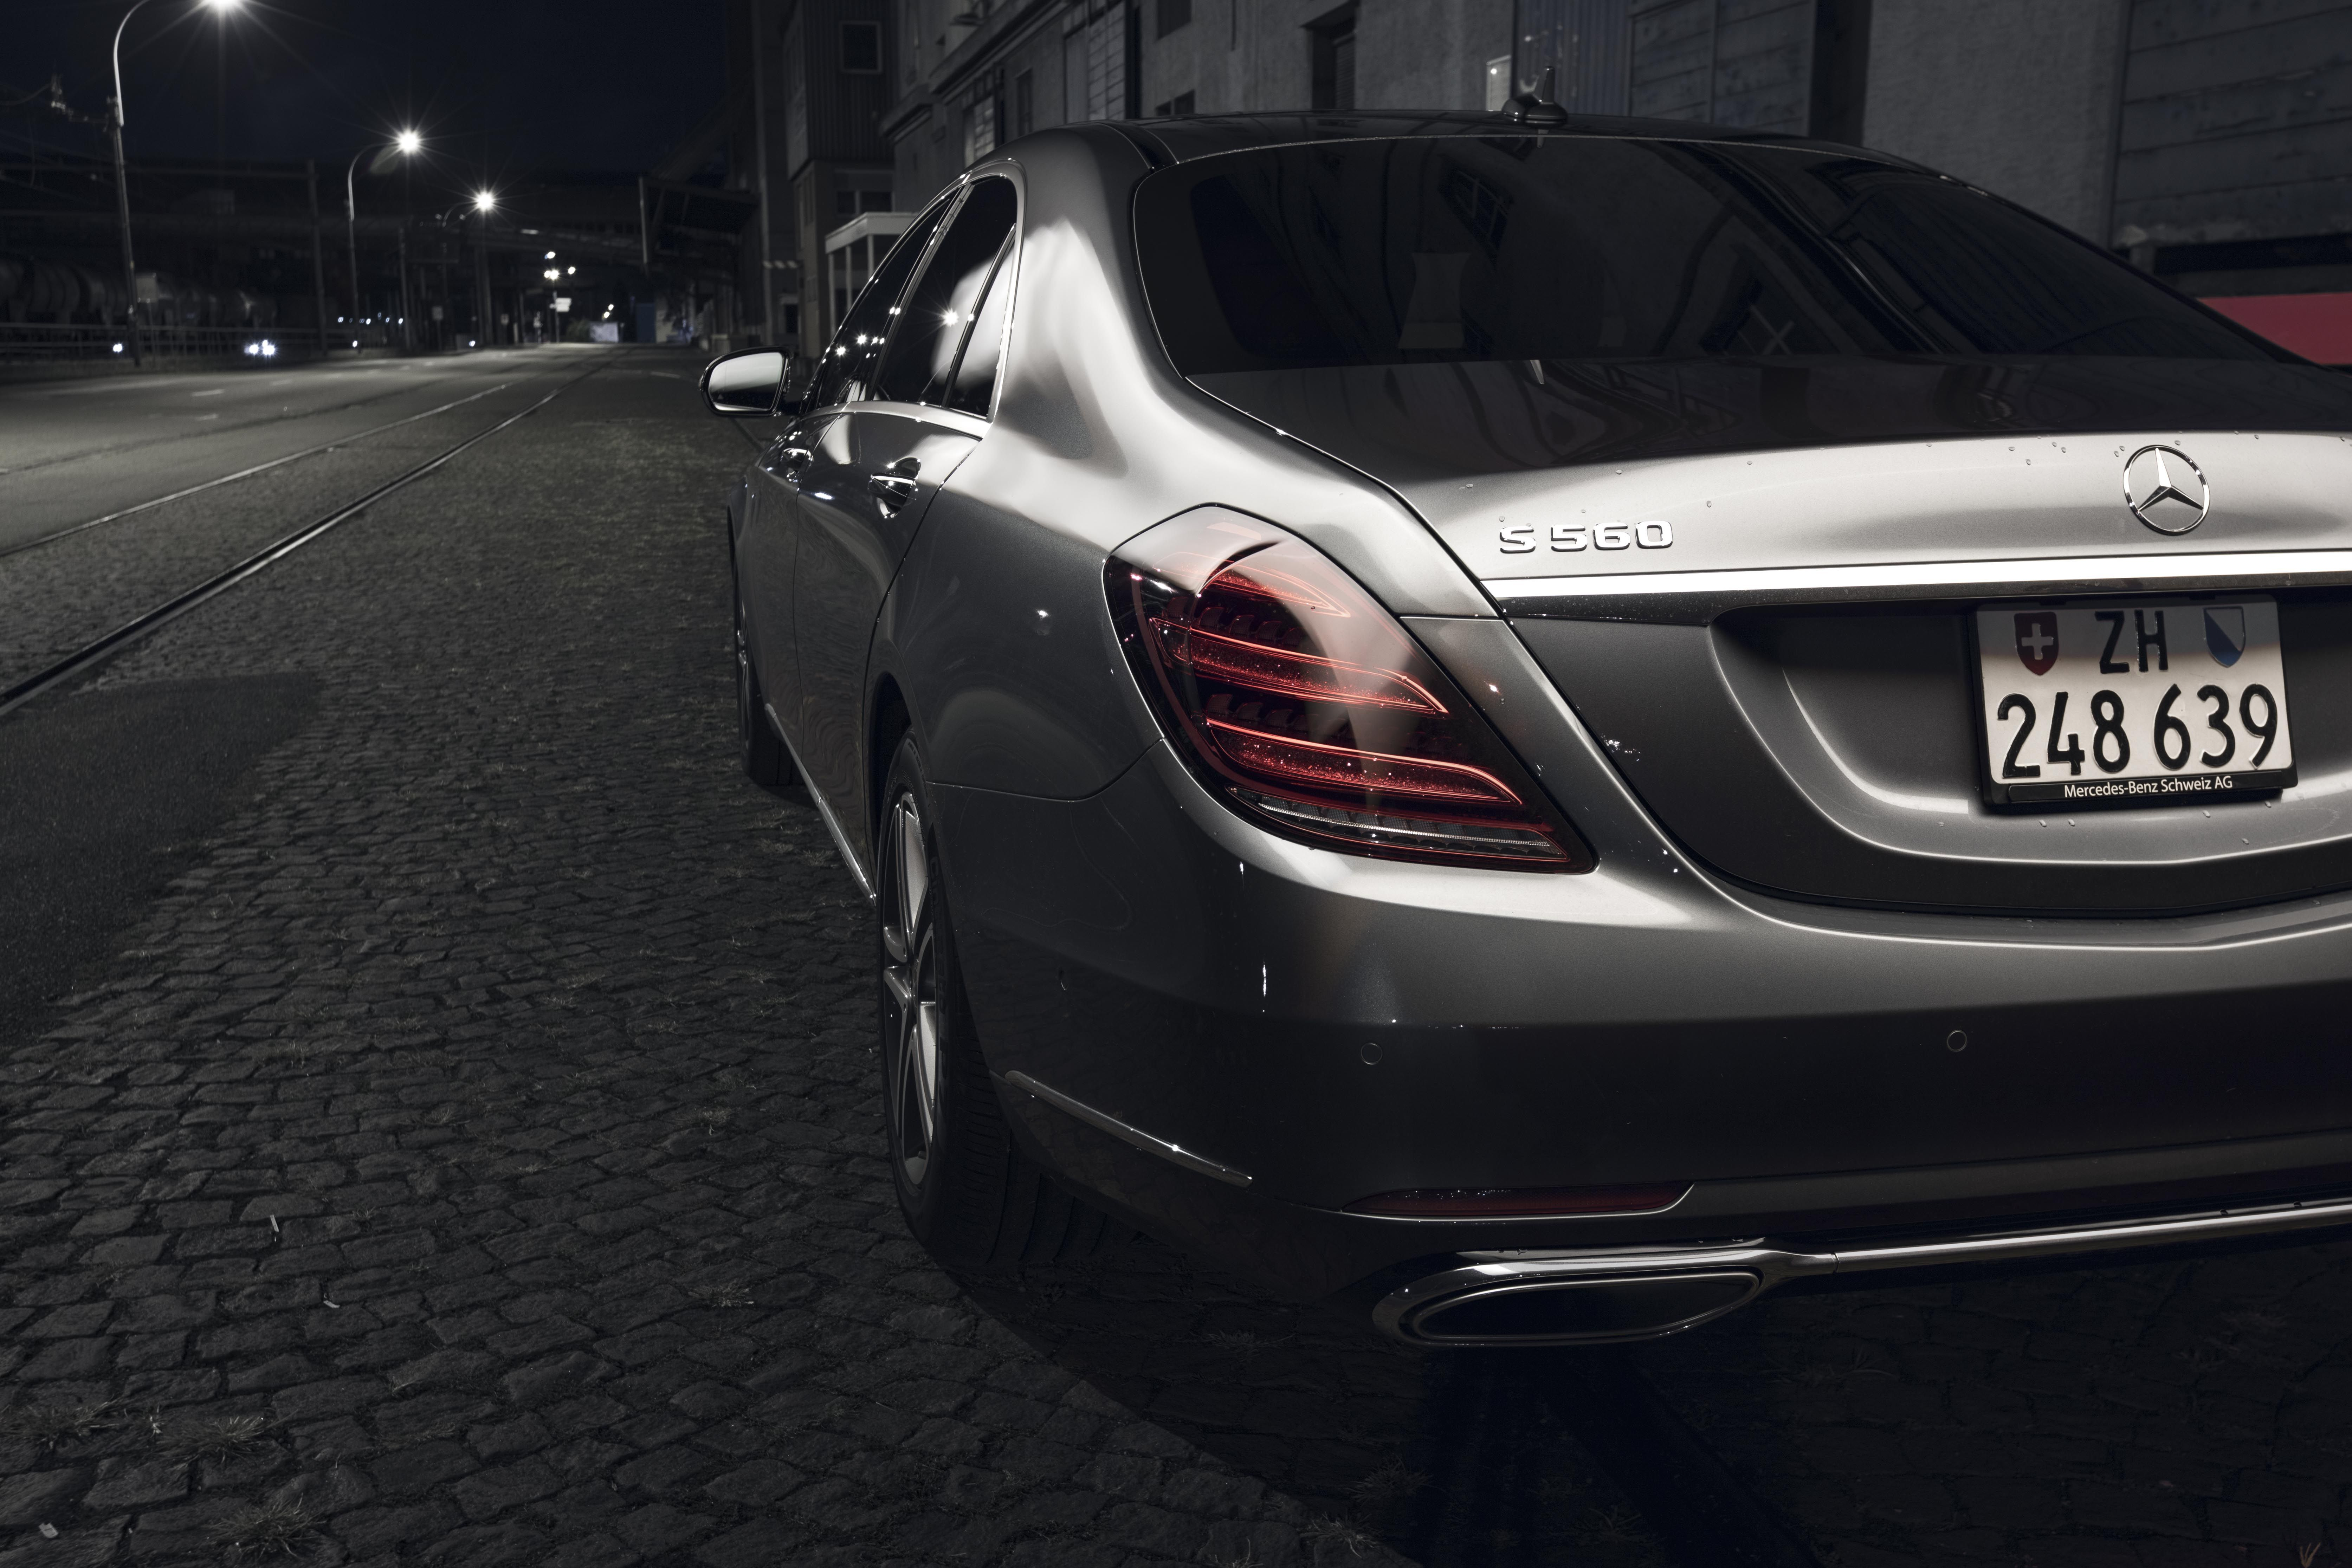 The New S Class Automotive Benchmark In Efficiency And Comfort